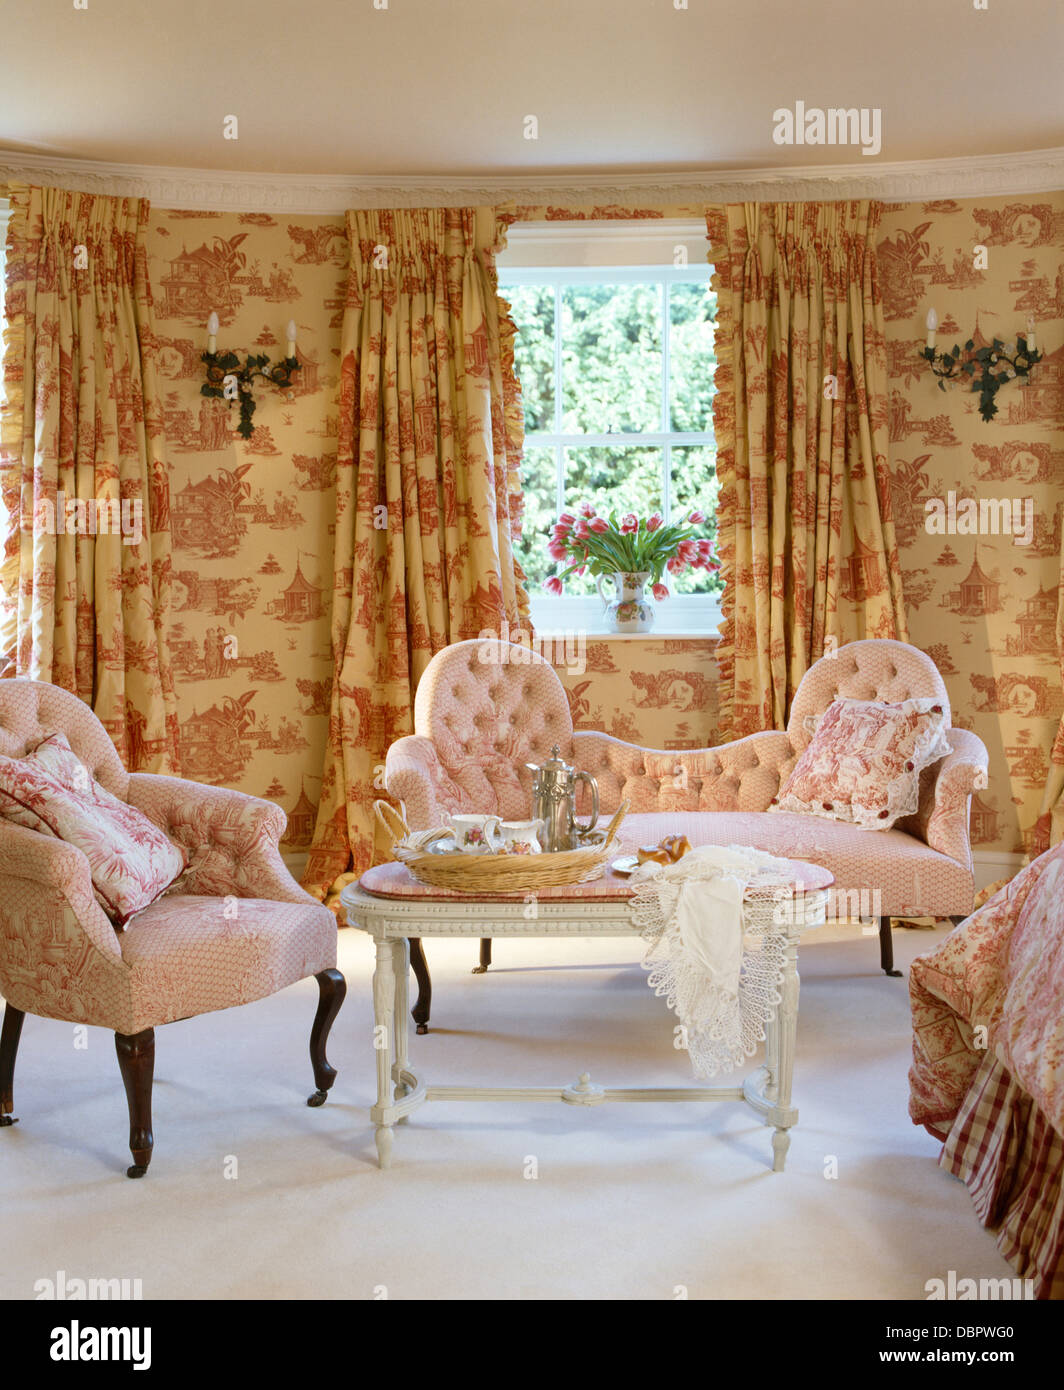 Pink Toile De Jouy Curtains And Matching Wallpaper In